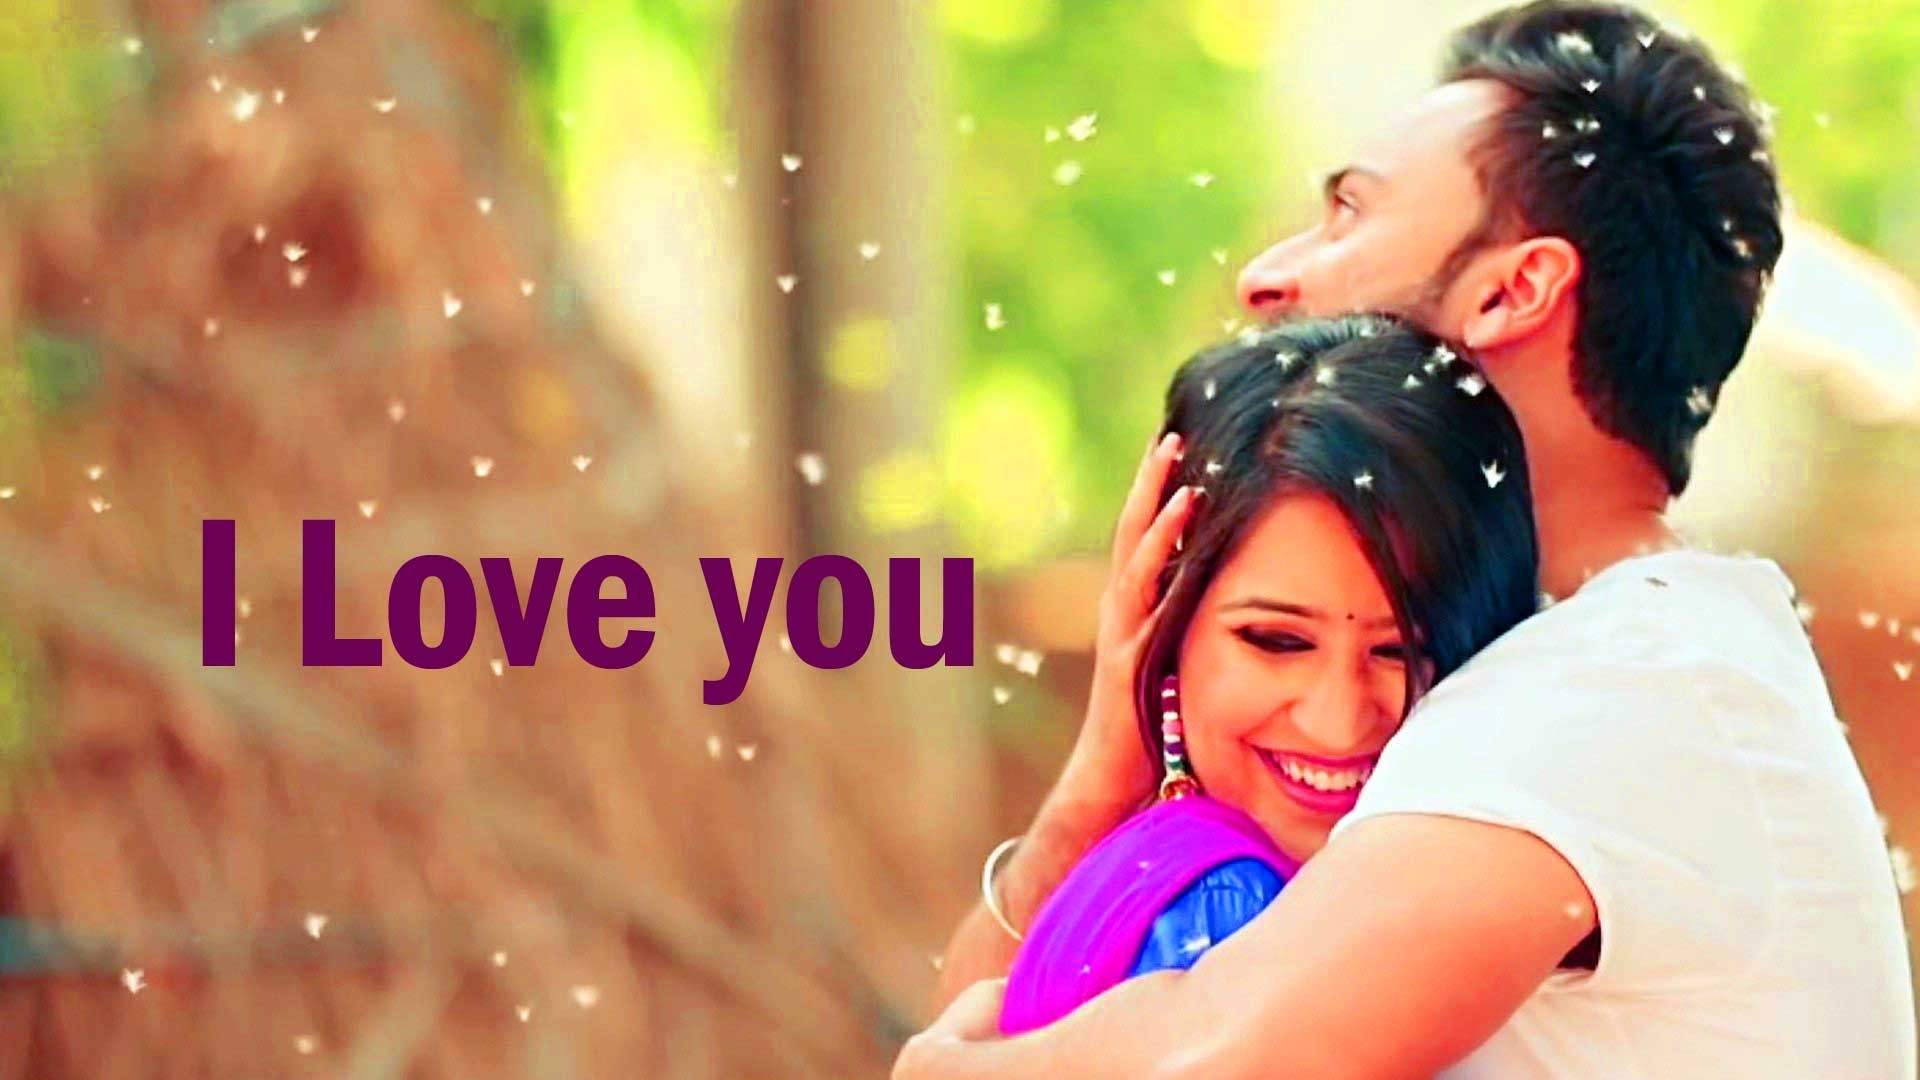 Hd Love Couples Wallpapers Group 83: Love Couple Wallpapers (64+ Pictures